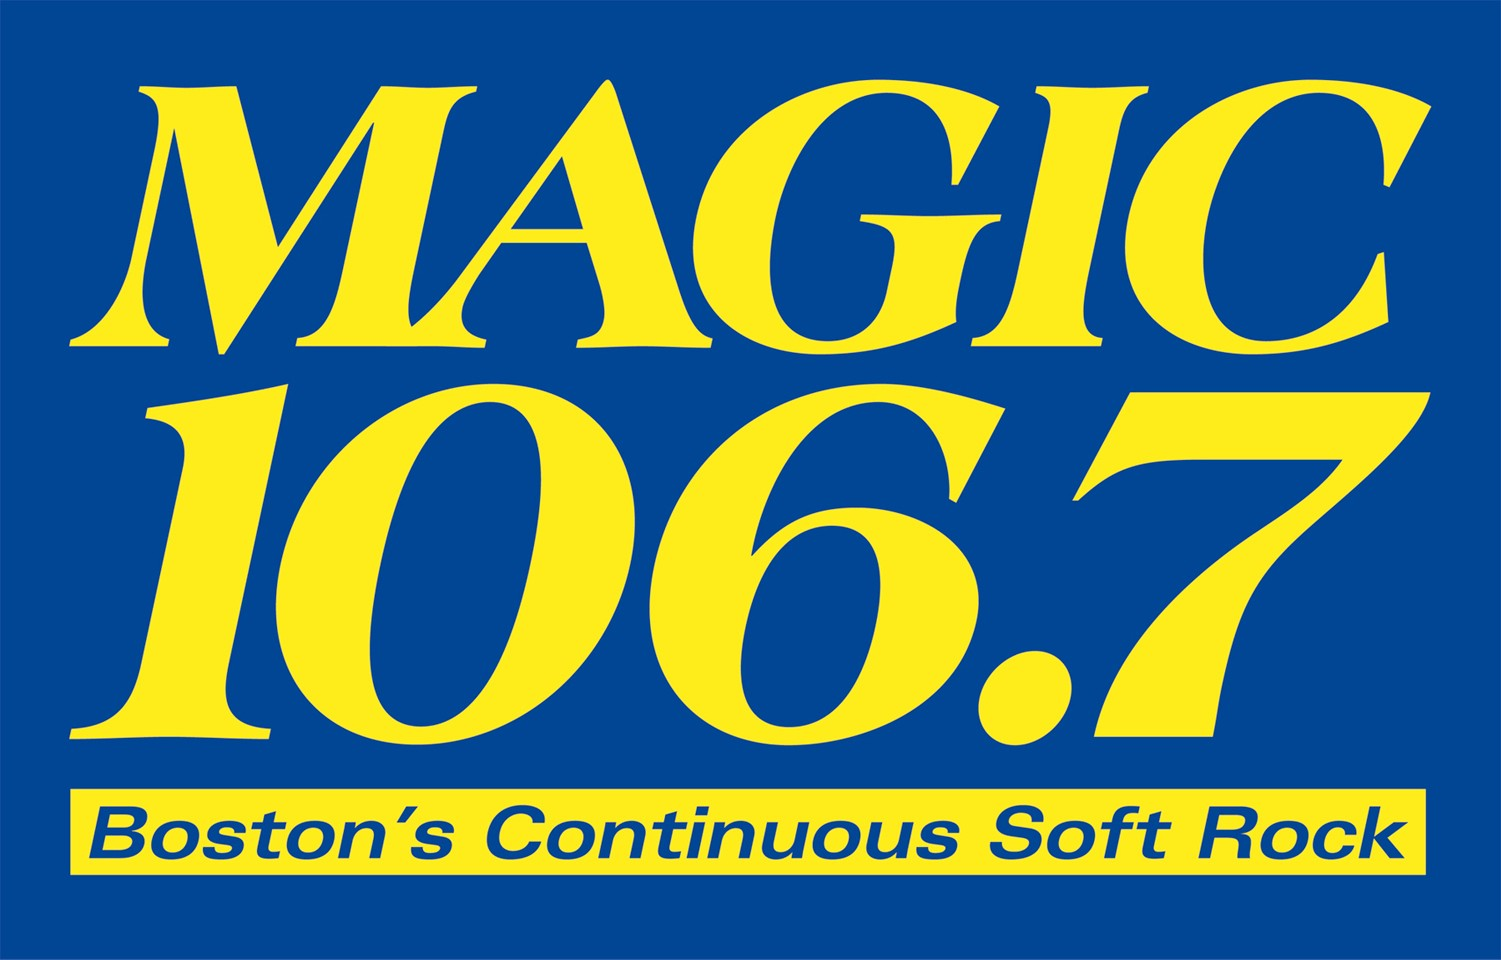 Magic 106.7 Logo 2014